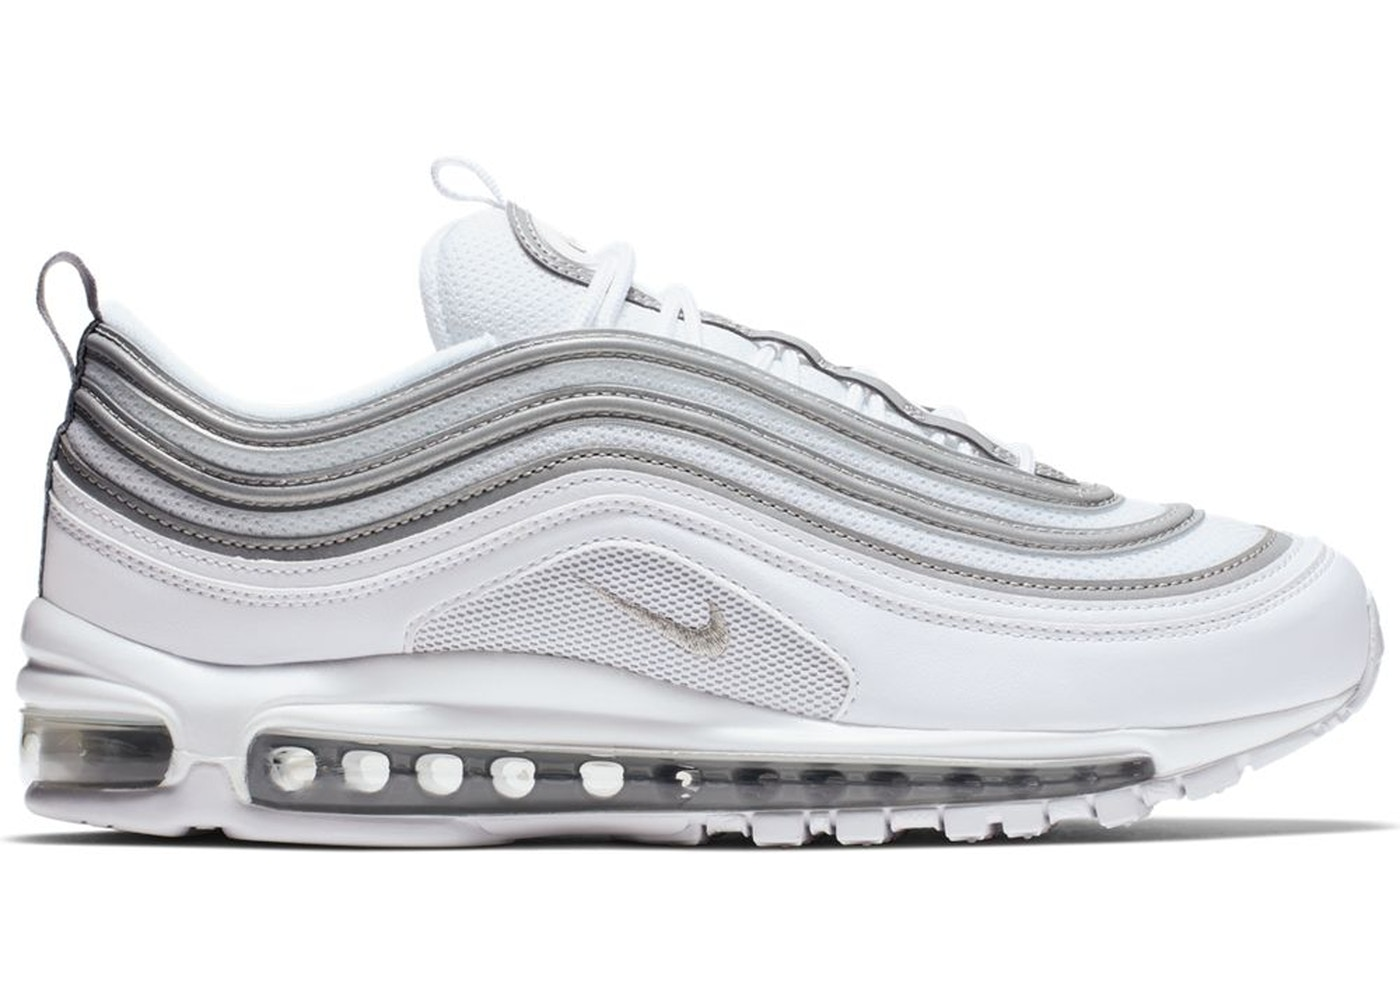 detailed look b2f3b 8e49d Buy Nike Air Max 97 Shoes & Deadstock Sneakers